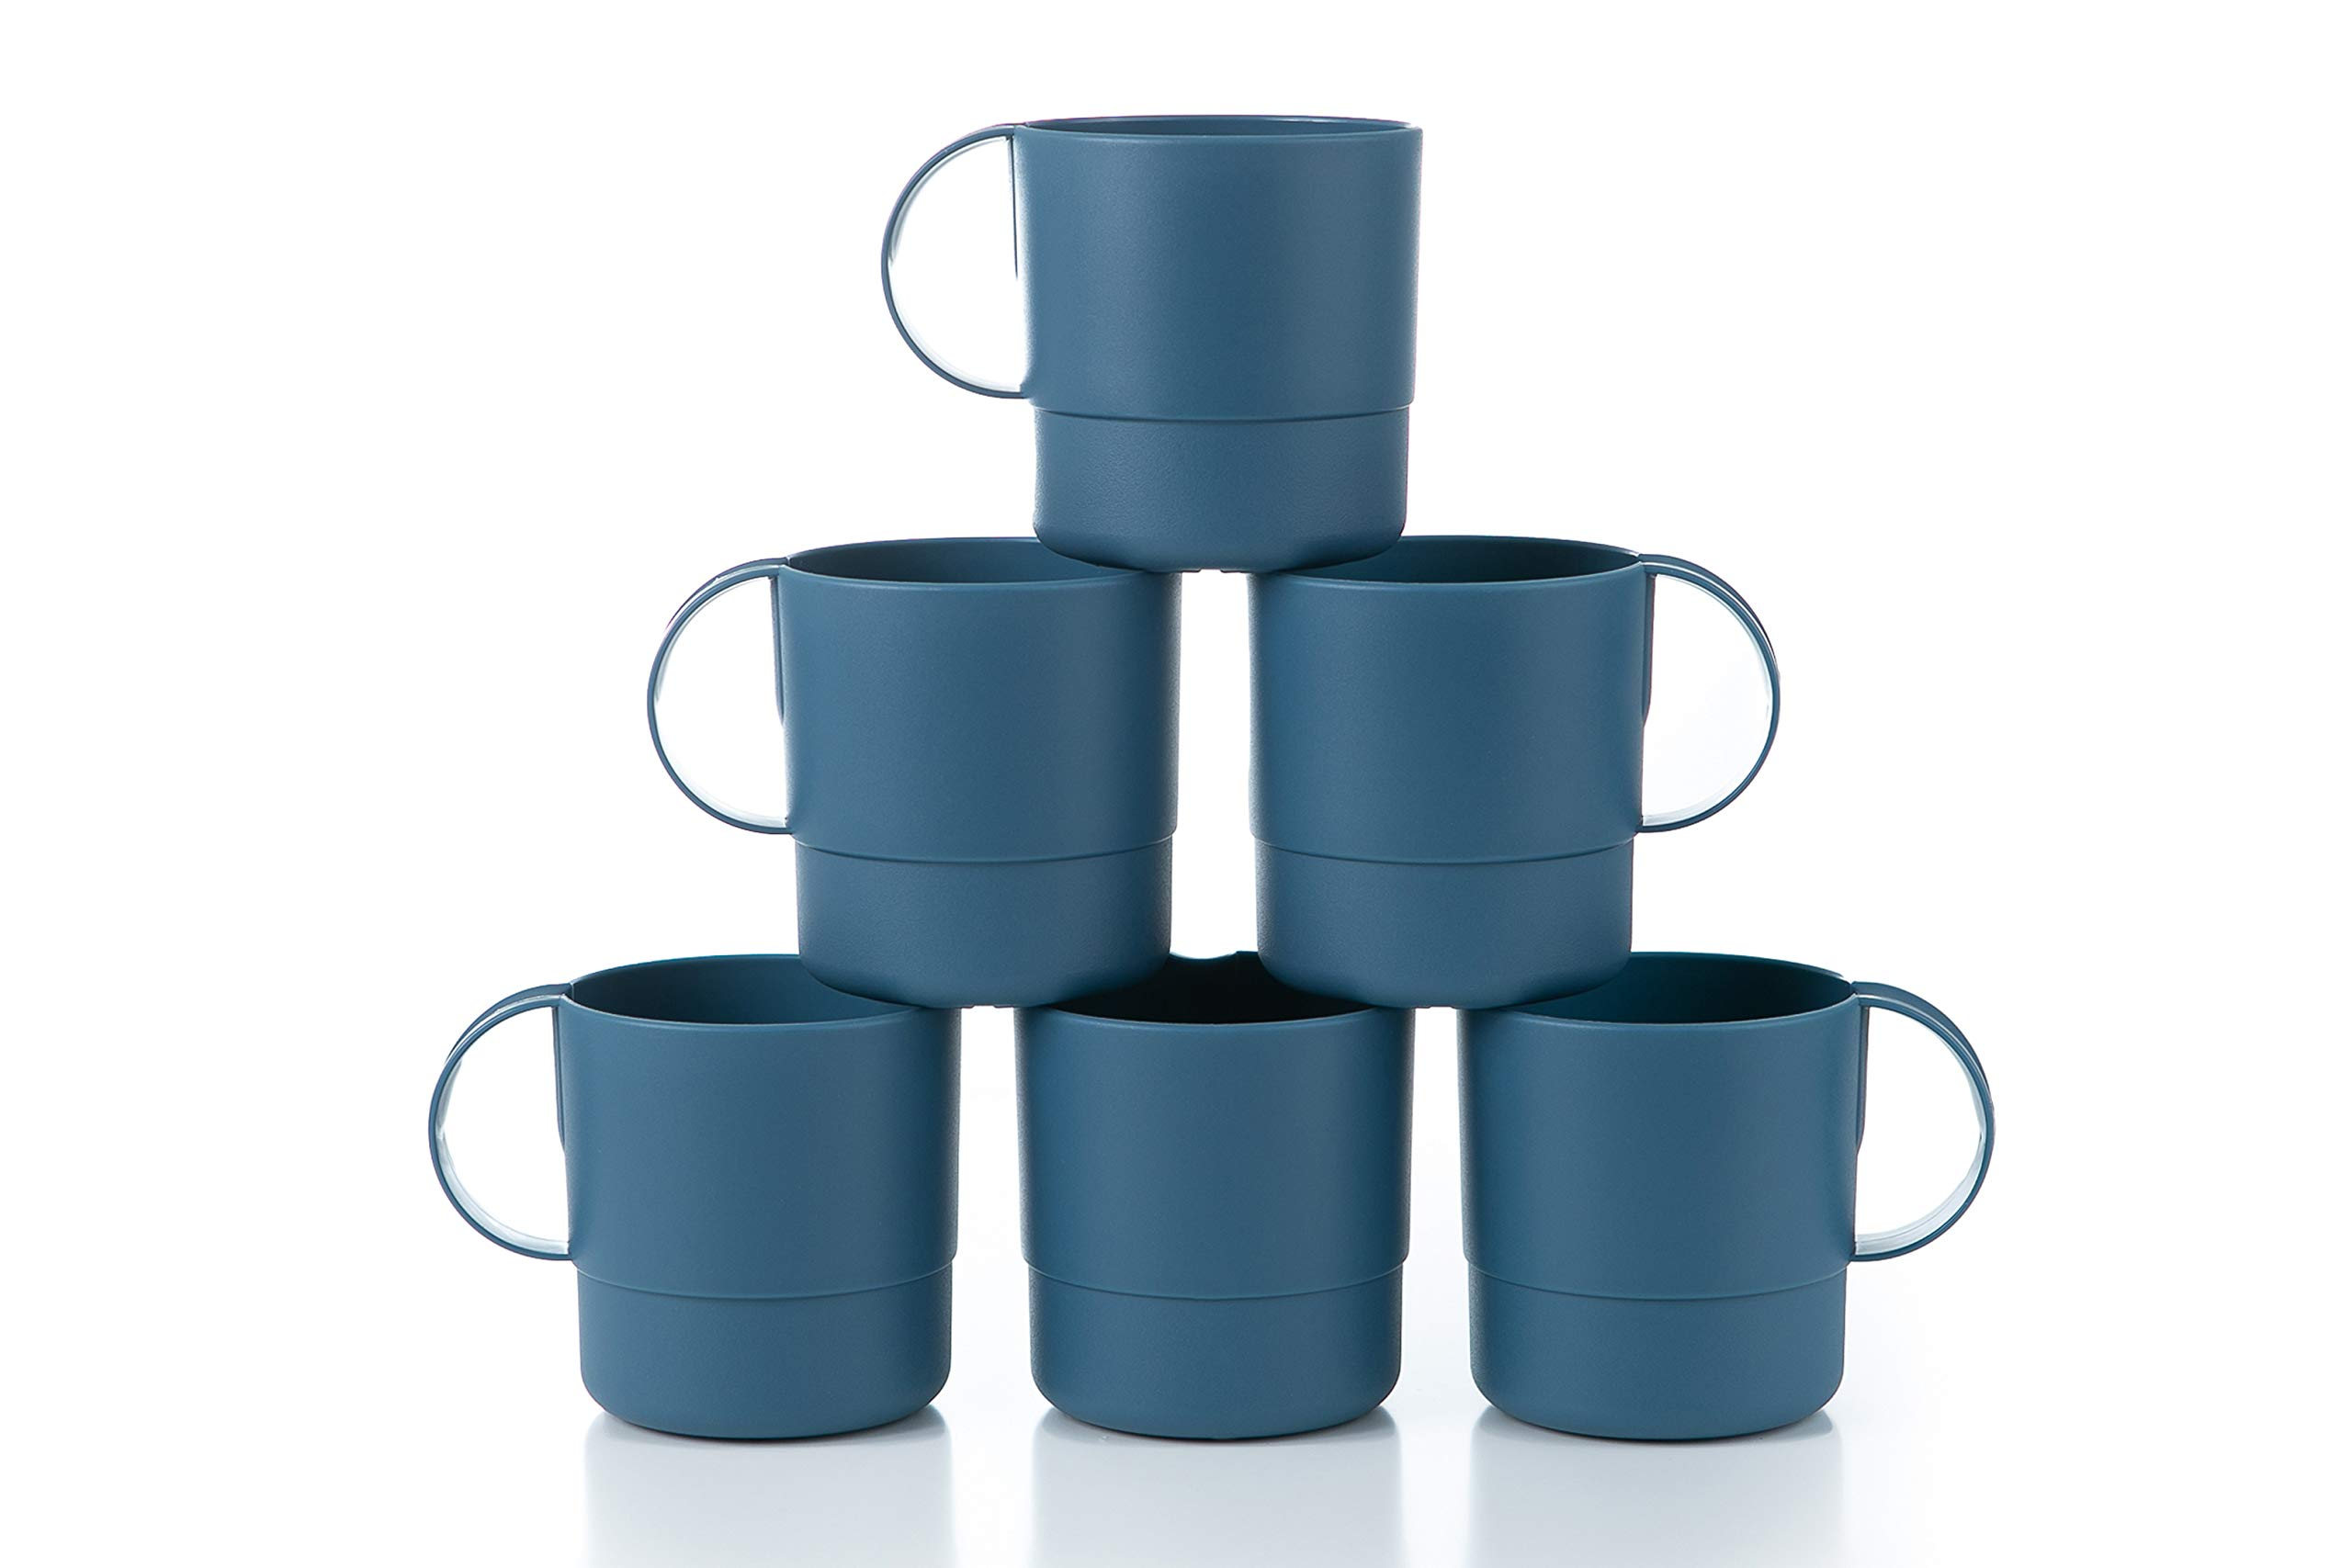 Amuse- Eco Friendly Sturdy Unbreakable & Stackable Mugs for Water, Coffee, Milk, Juice, Tea- Set of 6-11 oz (Blue)